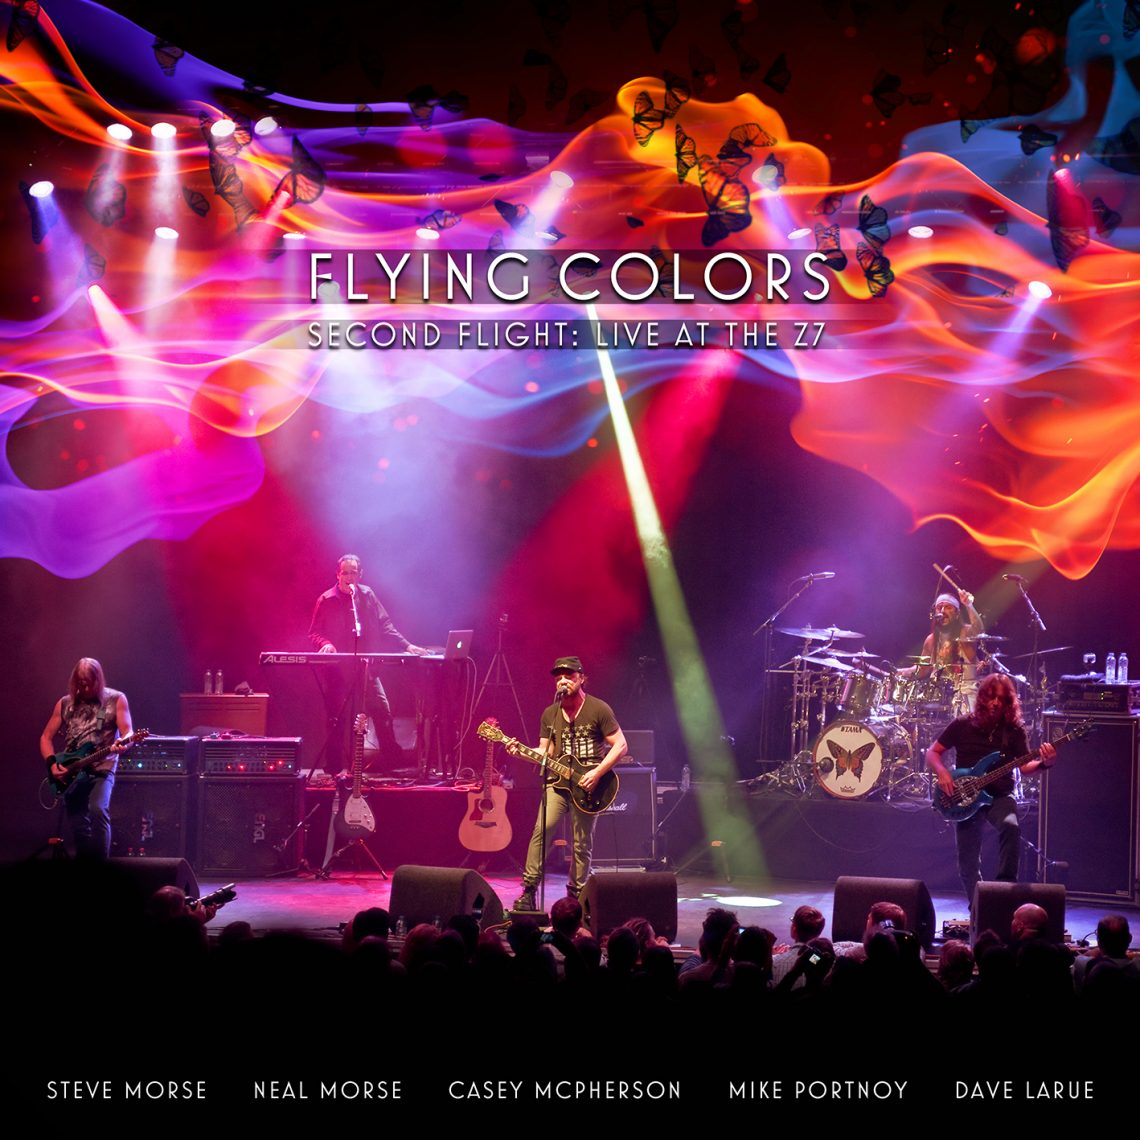 FLYING COLORS (MIKE PORTNOY) RELEASE 'BOMBS AWAY' LIVE VIDEO CLIP